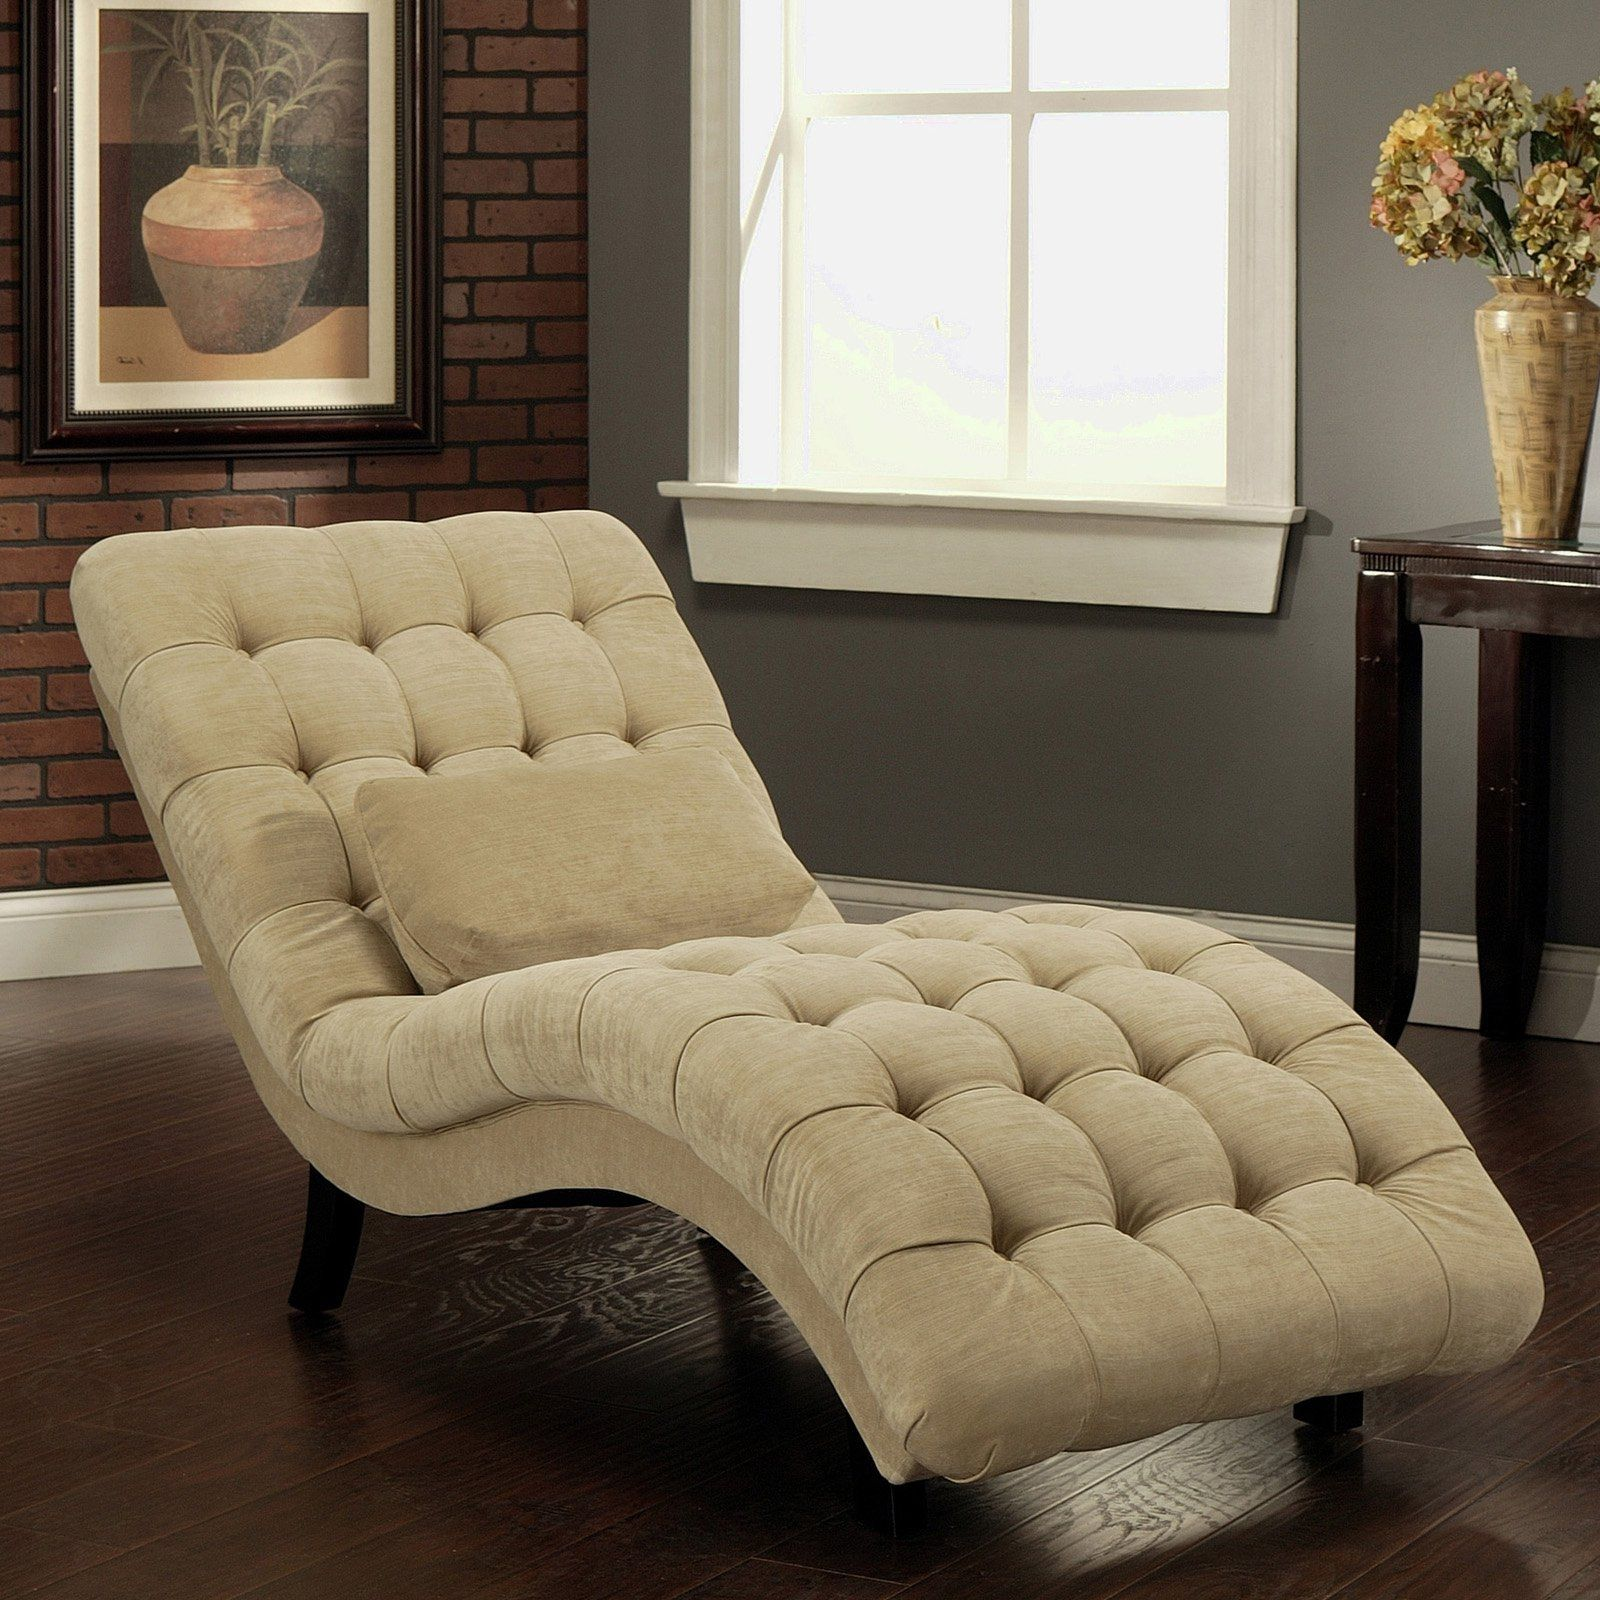 indoor chaise lounge chair. Double Chaise Lounge Chairs Indoors Indoor Chair N